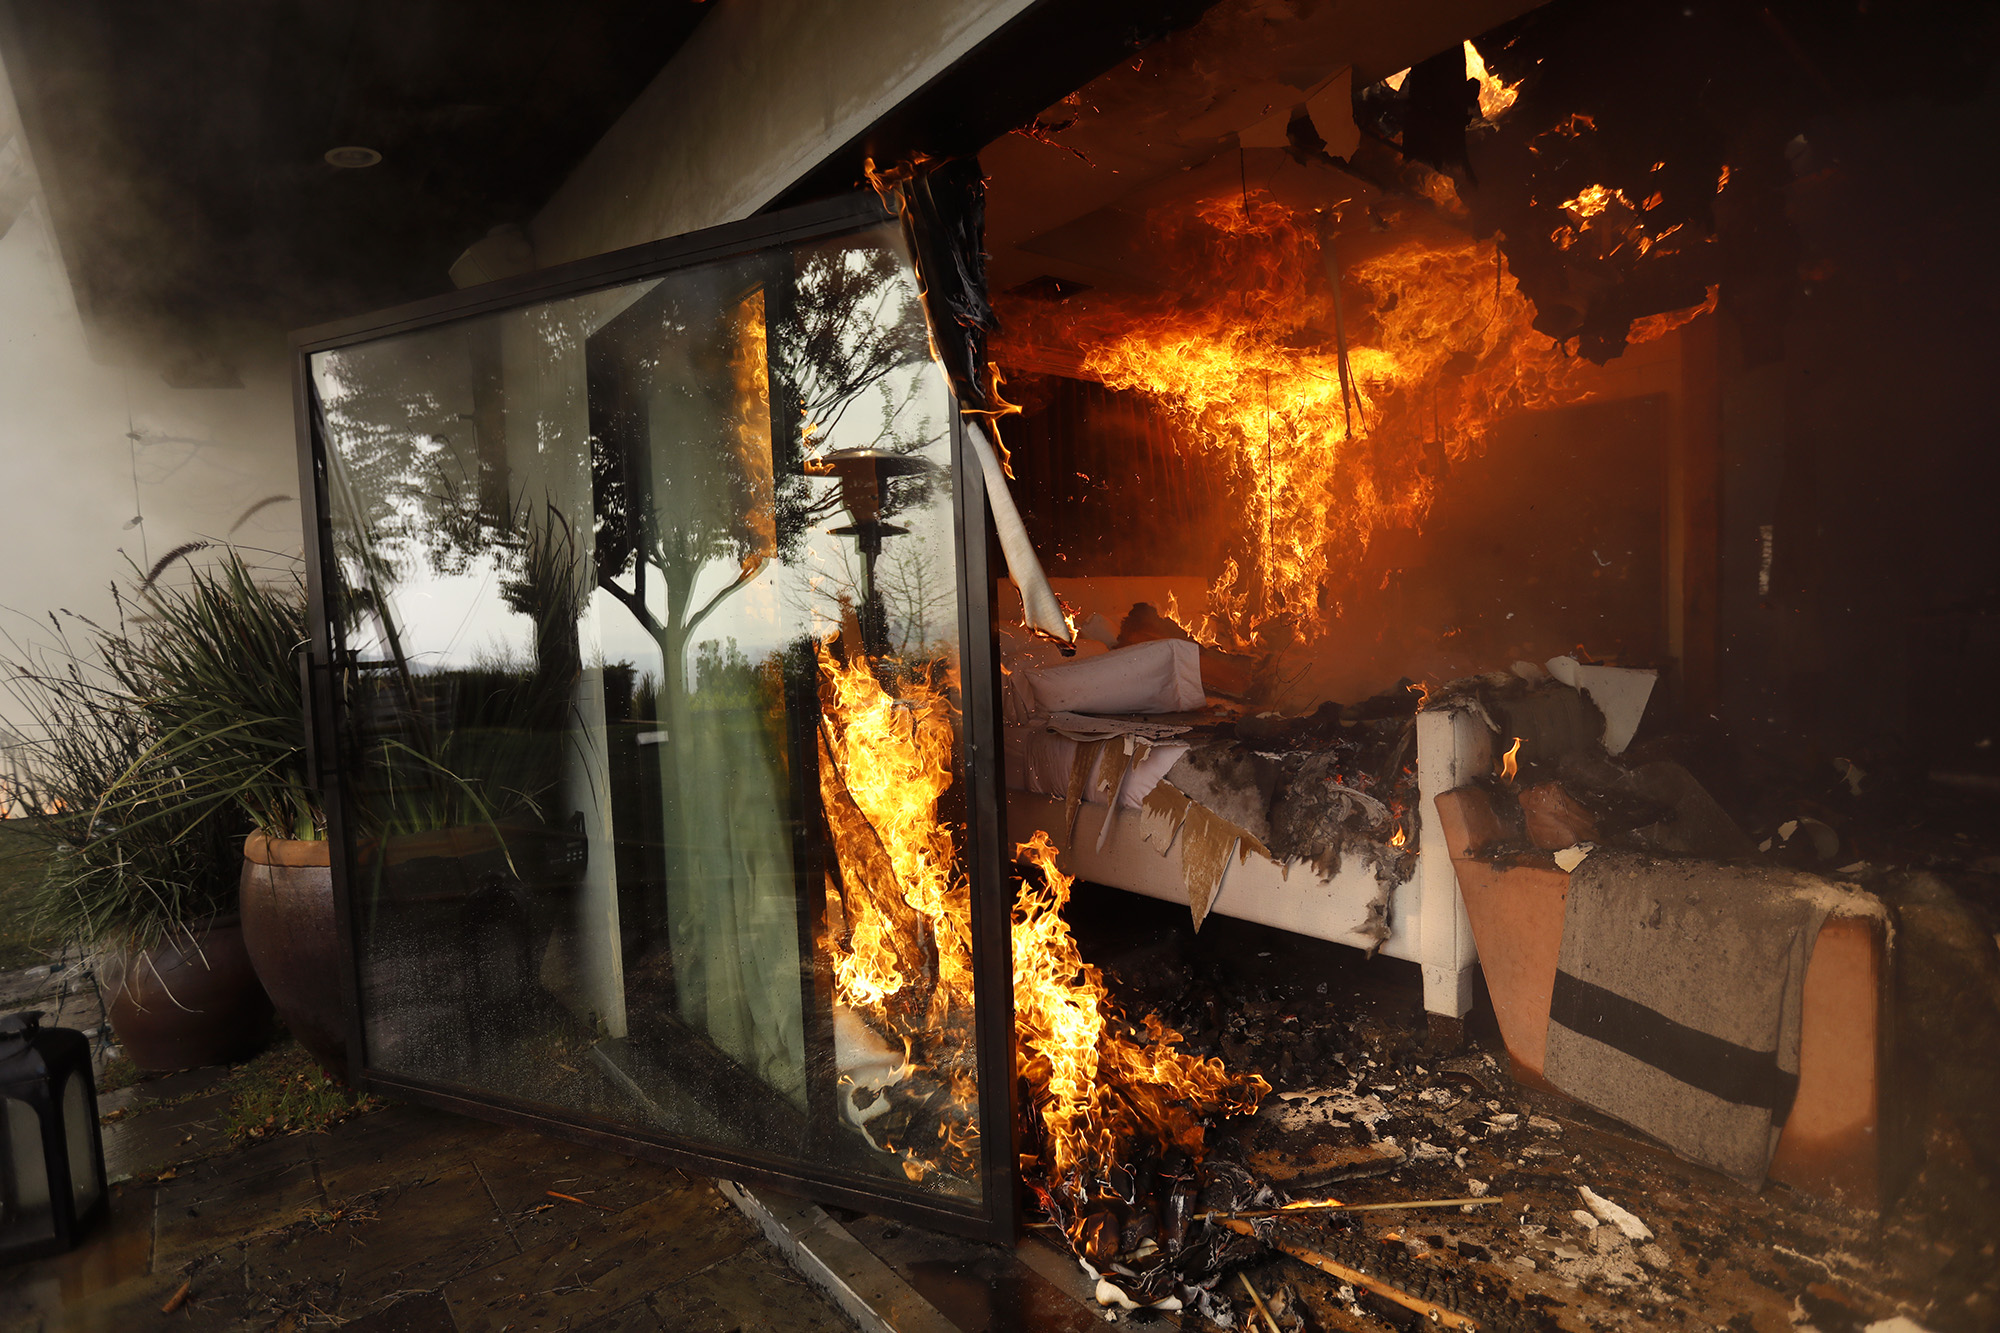 <div class='meta'><div class='origin-logo' data-origin='none'></div><span class='caption-text' data-credit='Genaro Molina / Los Angeles Times via Getty Images'>The bedroom of a home is engulfed in flames from the Skirball fire along Linda Flora Drive on December 6, 2017 in Bel-Air, California.</span></div>